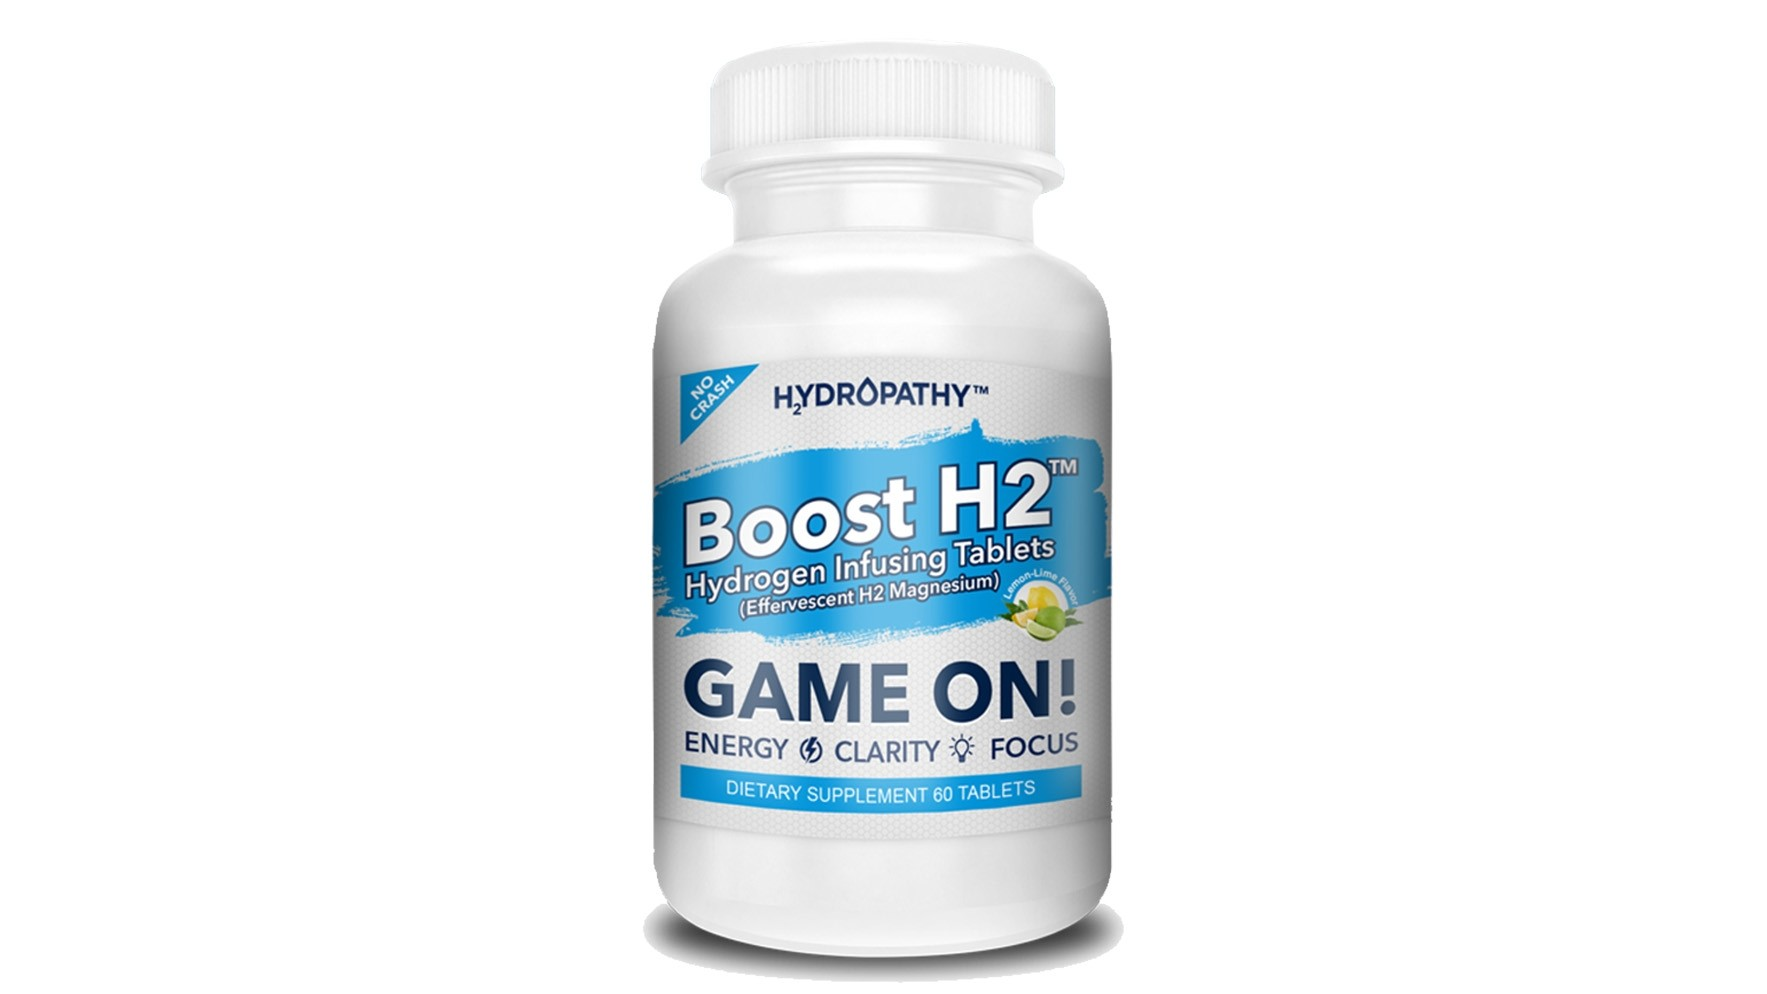 BOOST H2 Hydrogen Infusing Tablets - Hydropathy